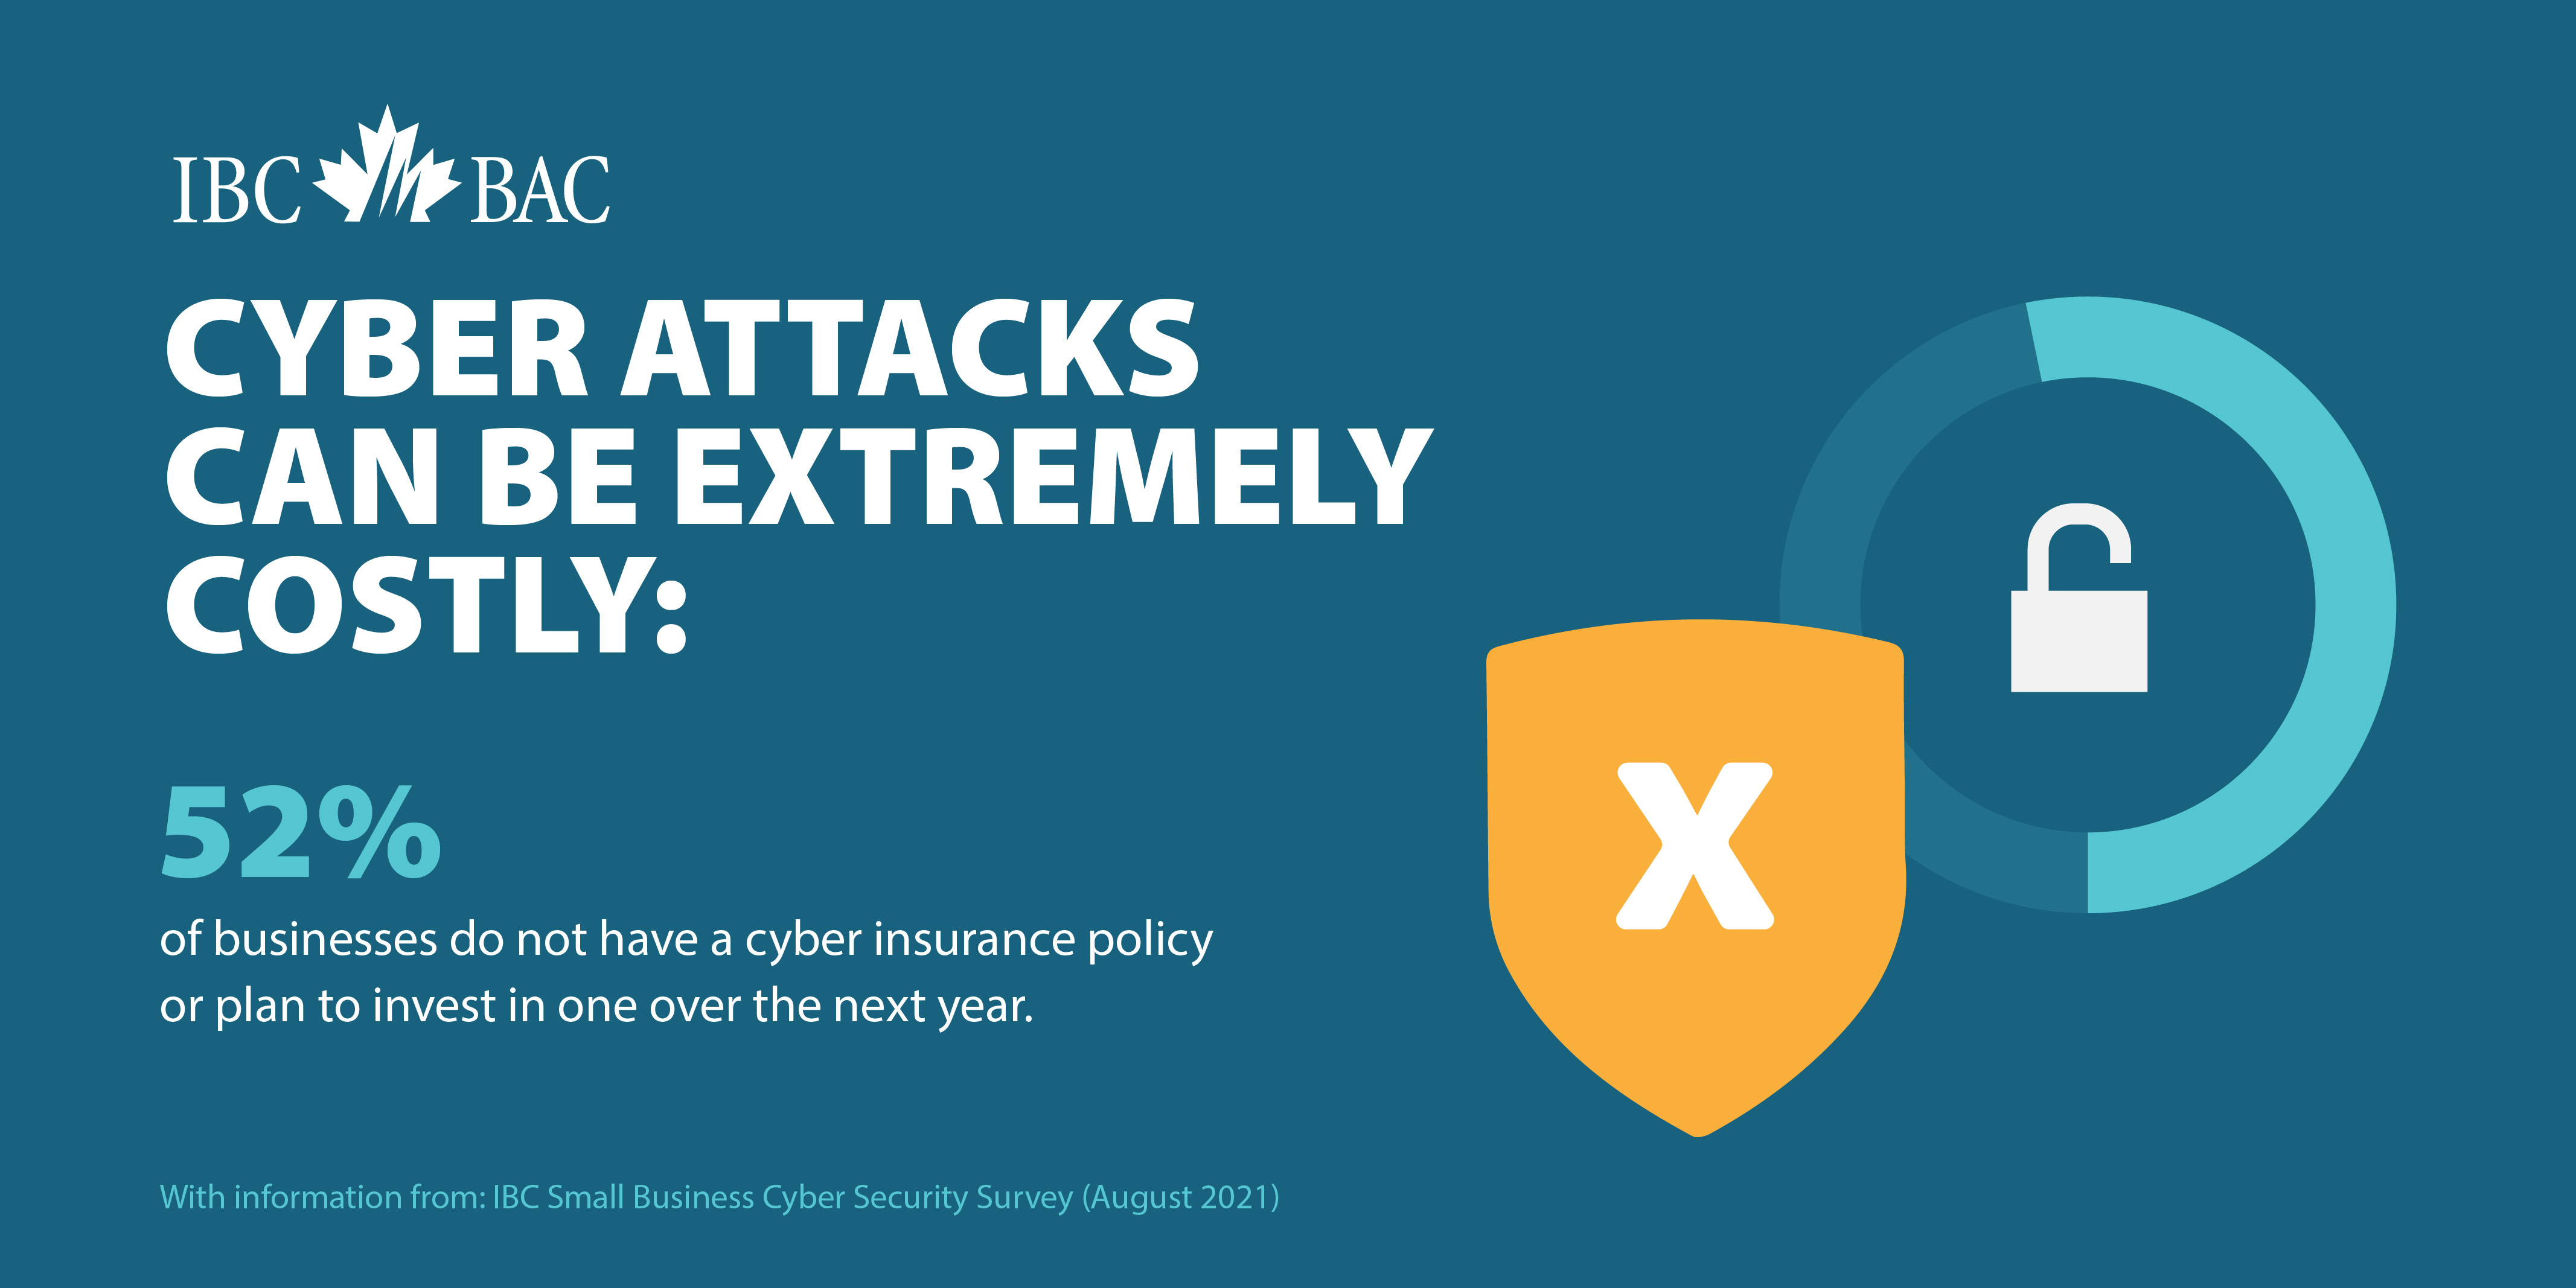 Cyber attacks can be extremely costly